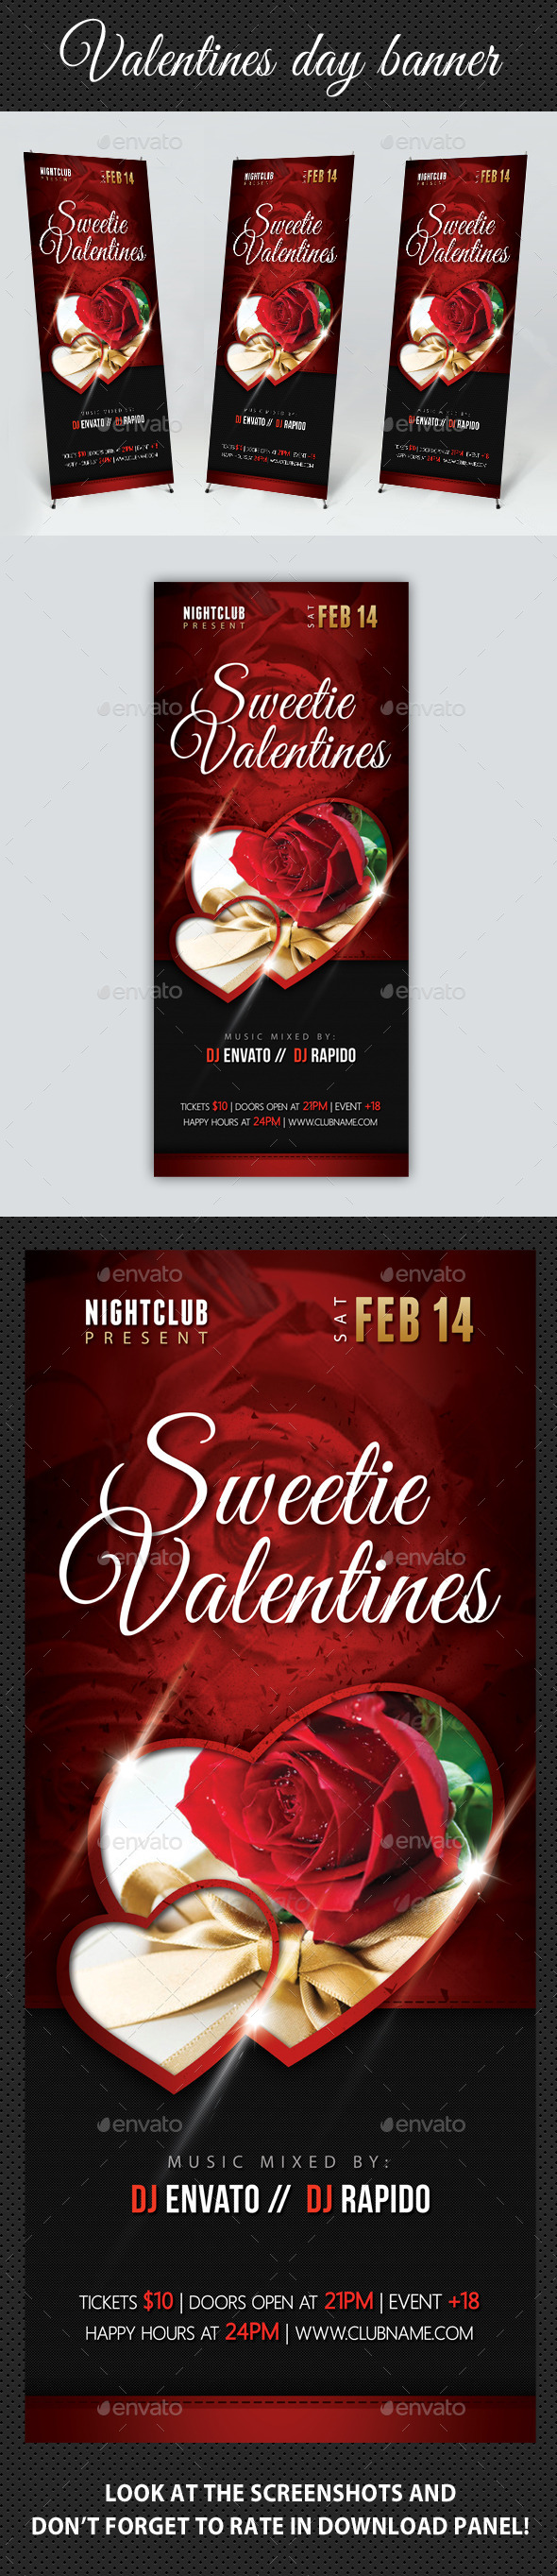 Valentines Day Banner Template - Signage Print Templates